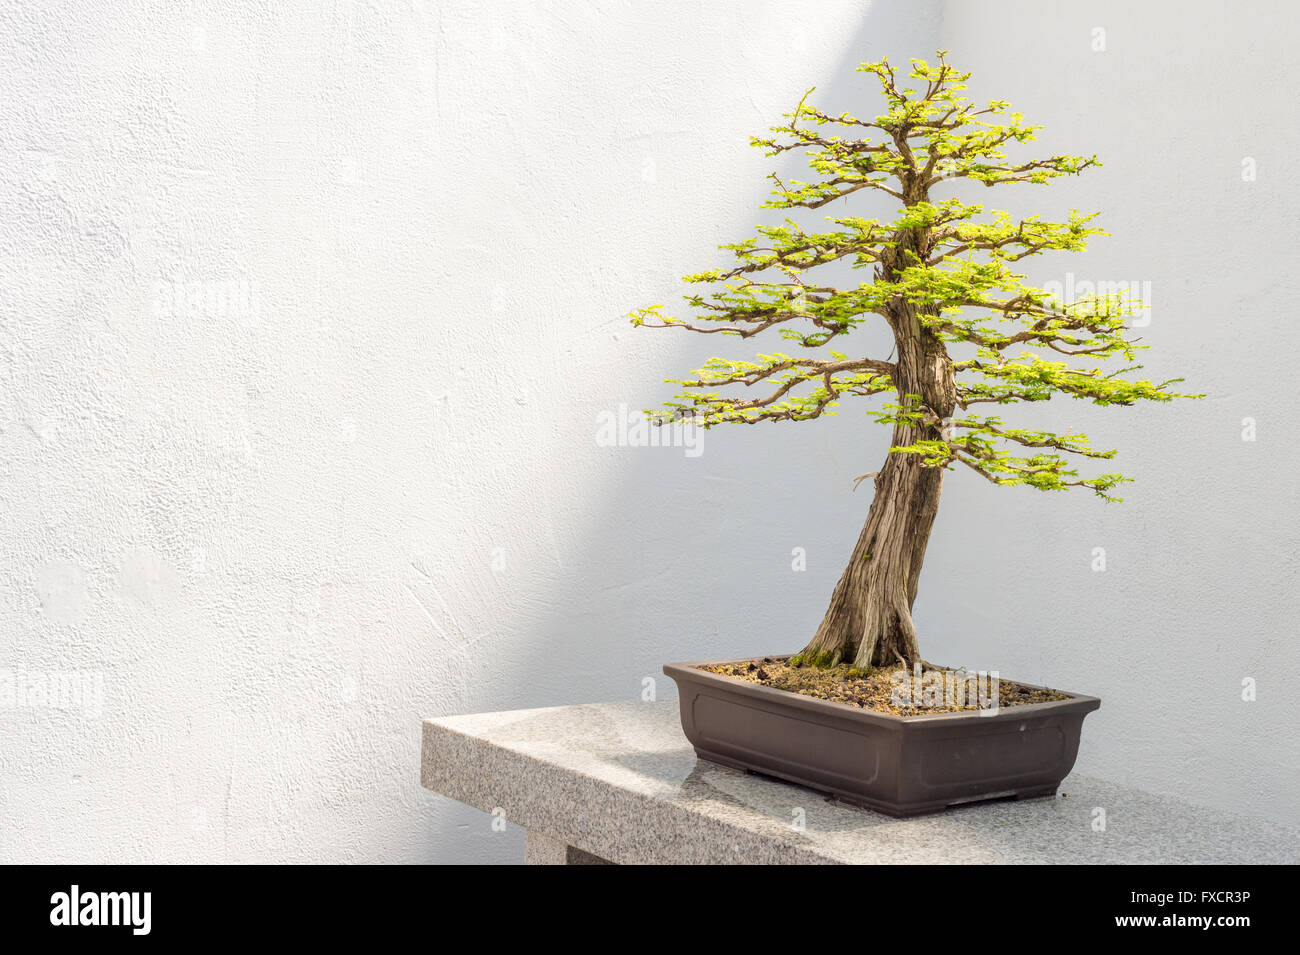 kahle zypresse bonsai taxodium distichum stockfoto bild 102314458 alamy. Black Bedroom Furniture Sets. Home Design Ideas